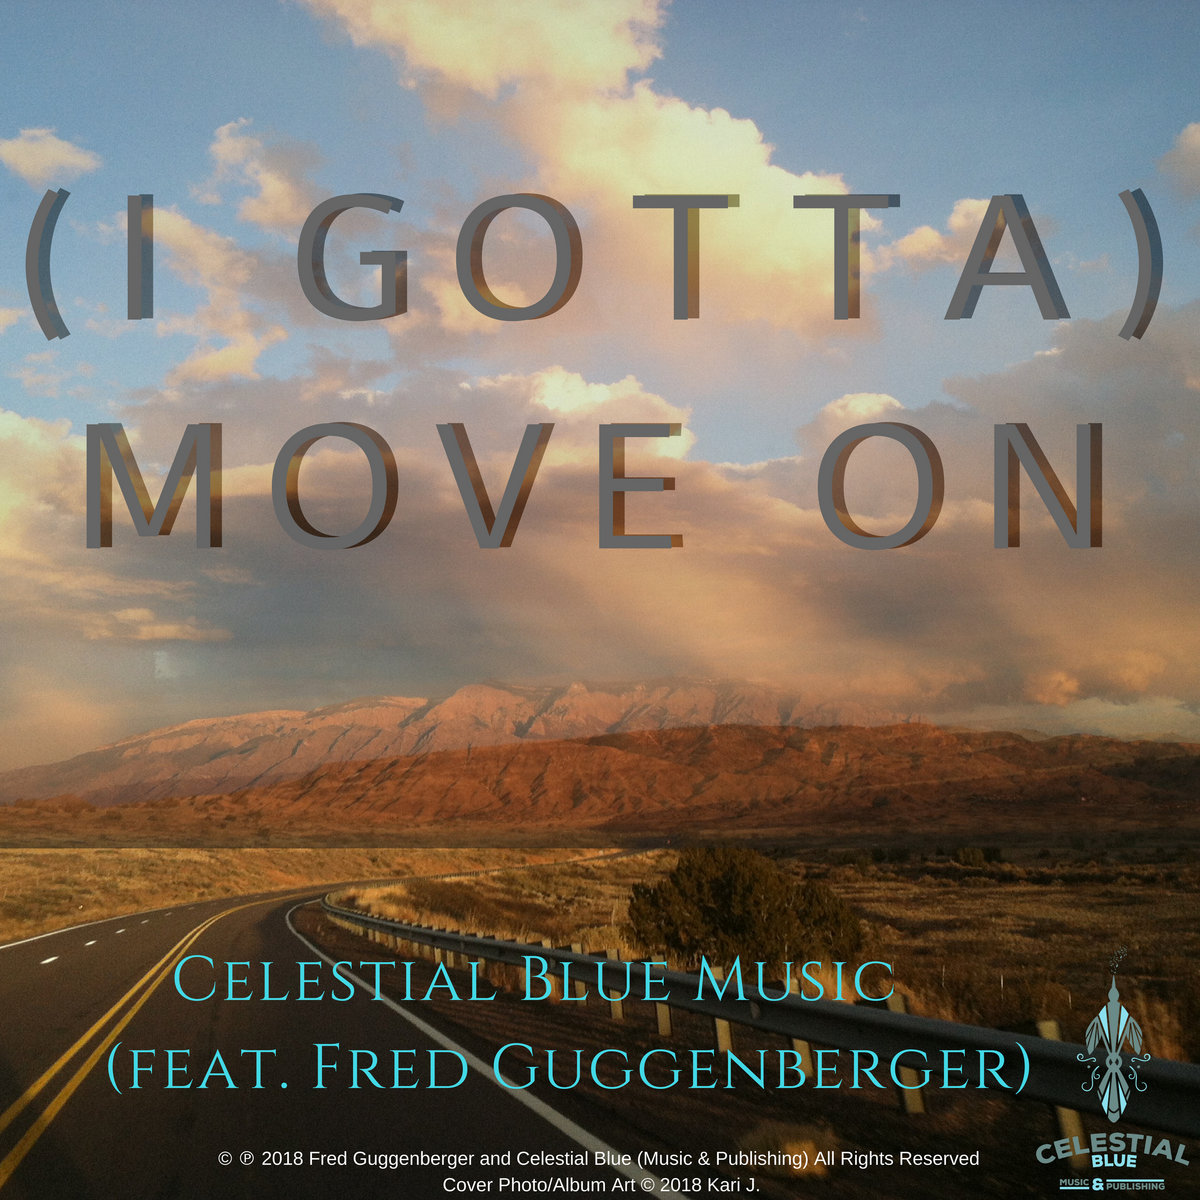 (I Gotta) Move On by Celestial Blue Music (feat. Fred Guggenberger)